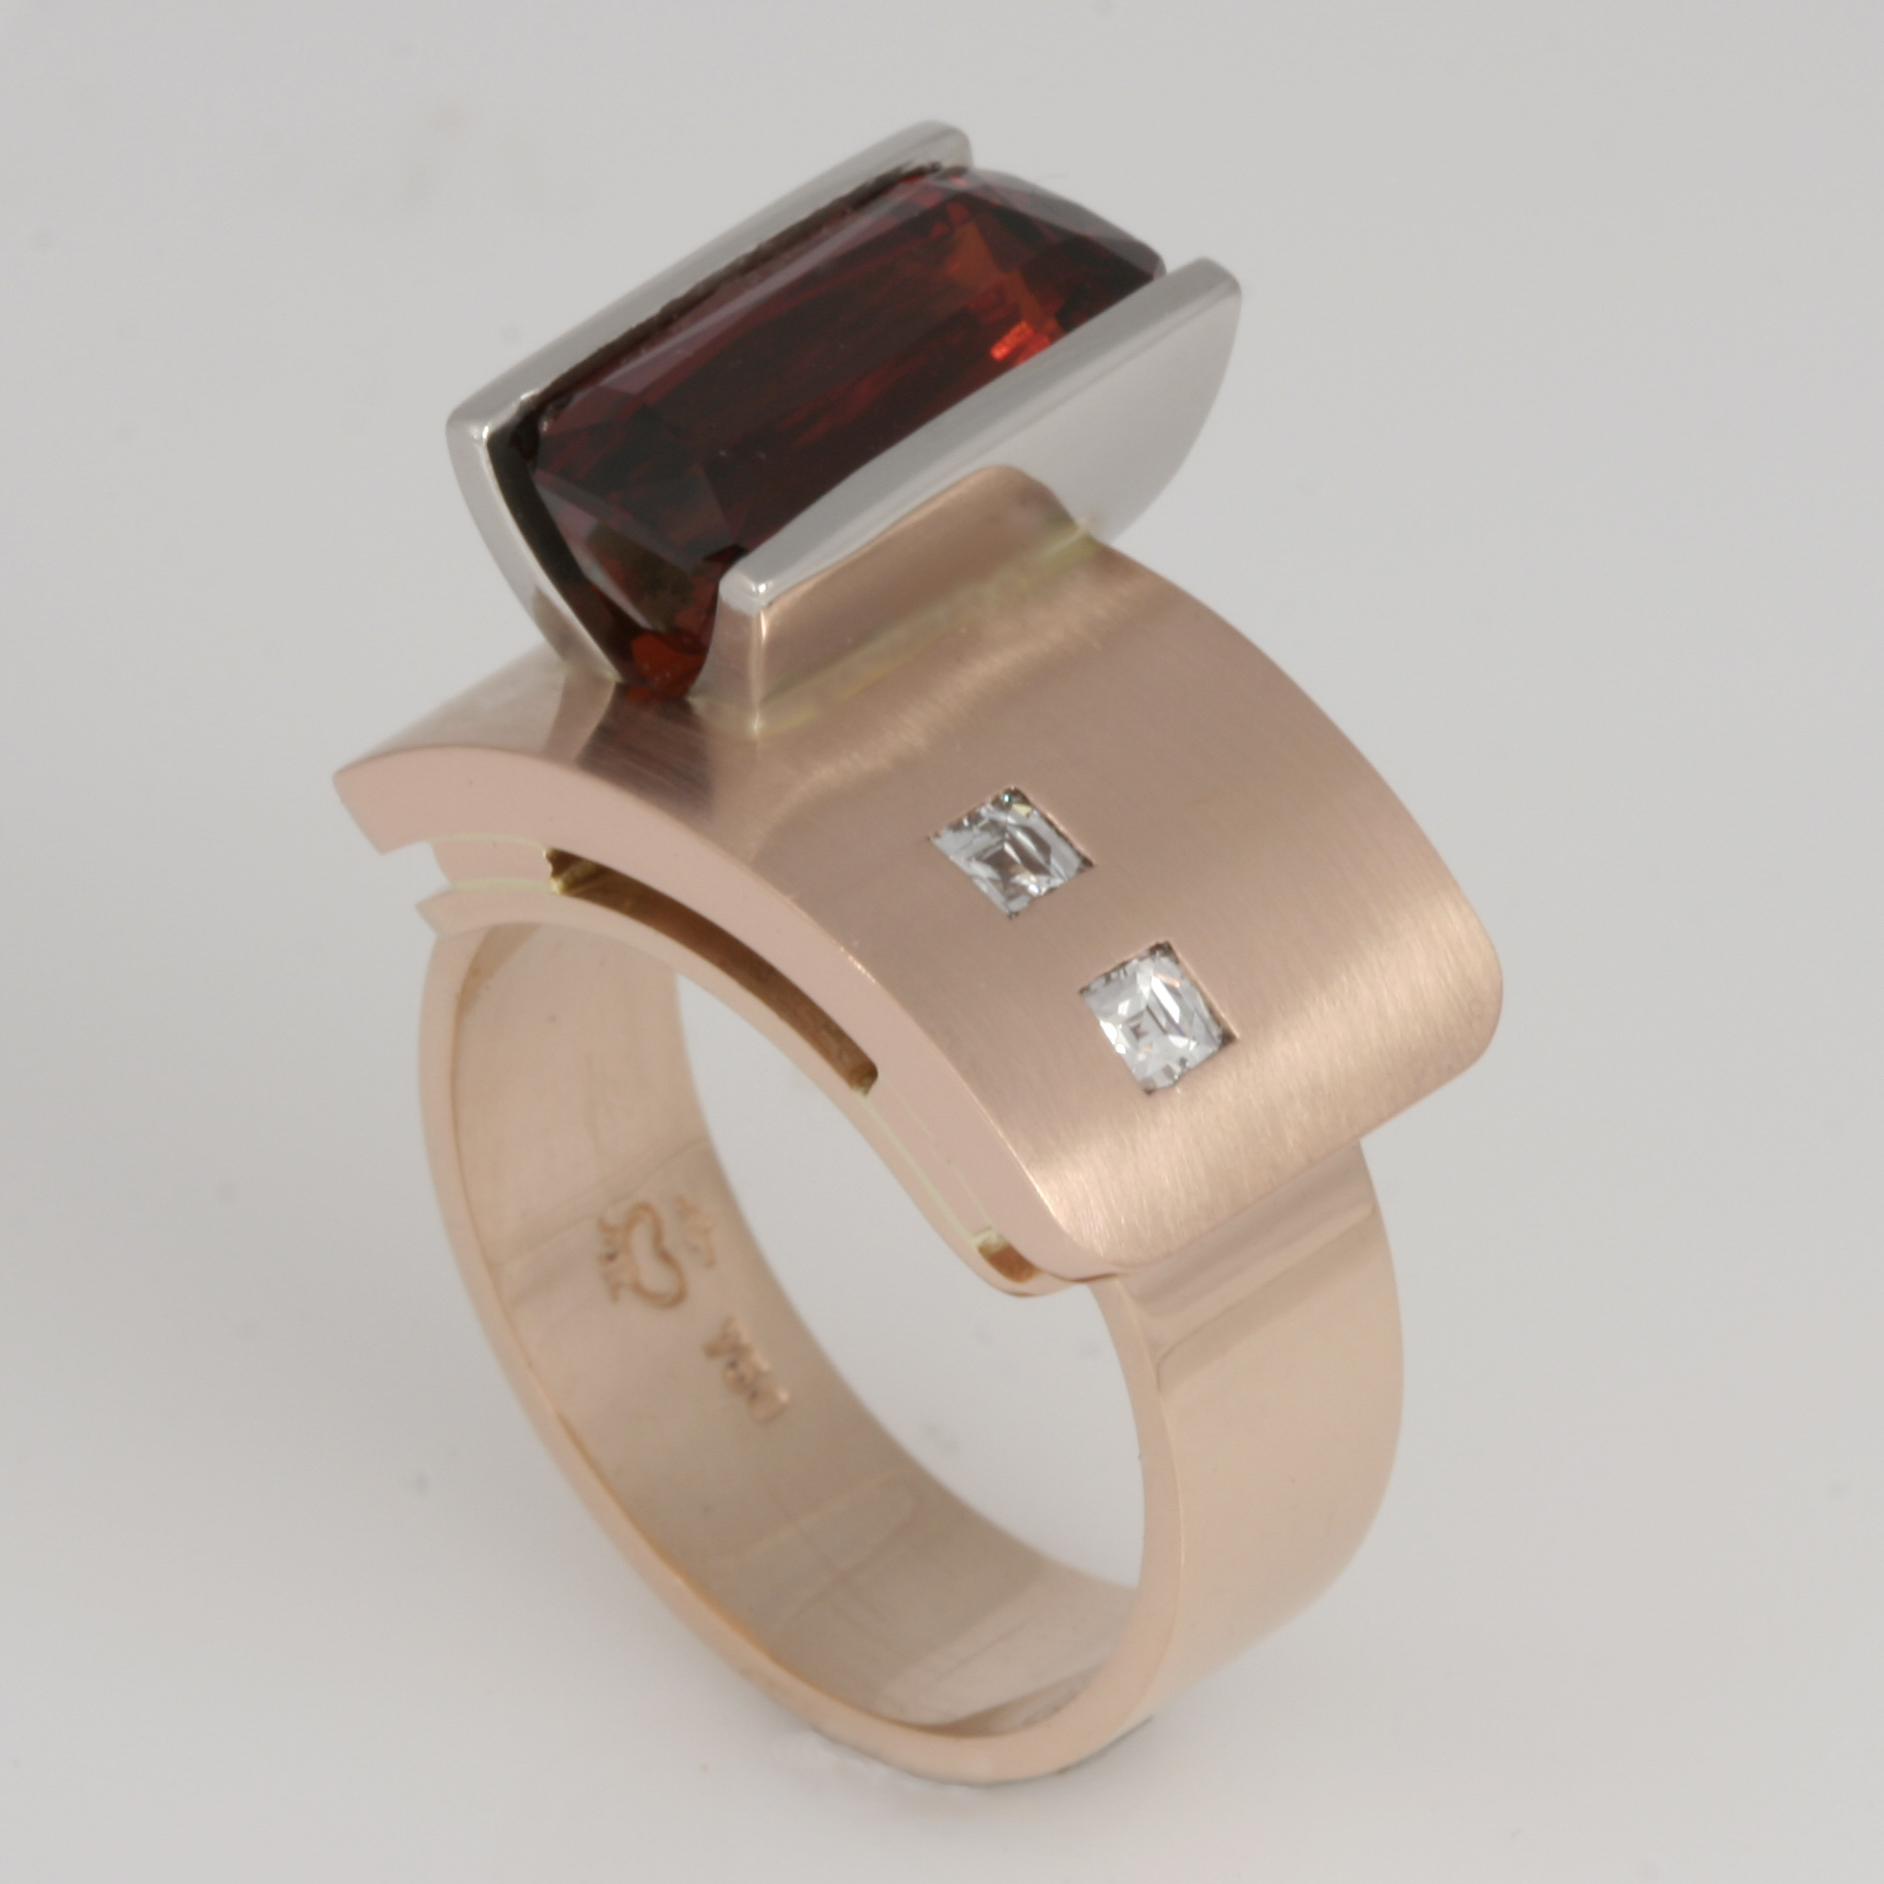 Handmade ladies 18ct peach and rose gold and palladium 'Archie' design ring featuring a spessartite and tycoon cut diamonds